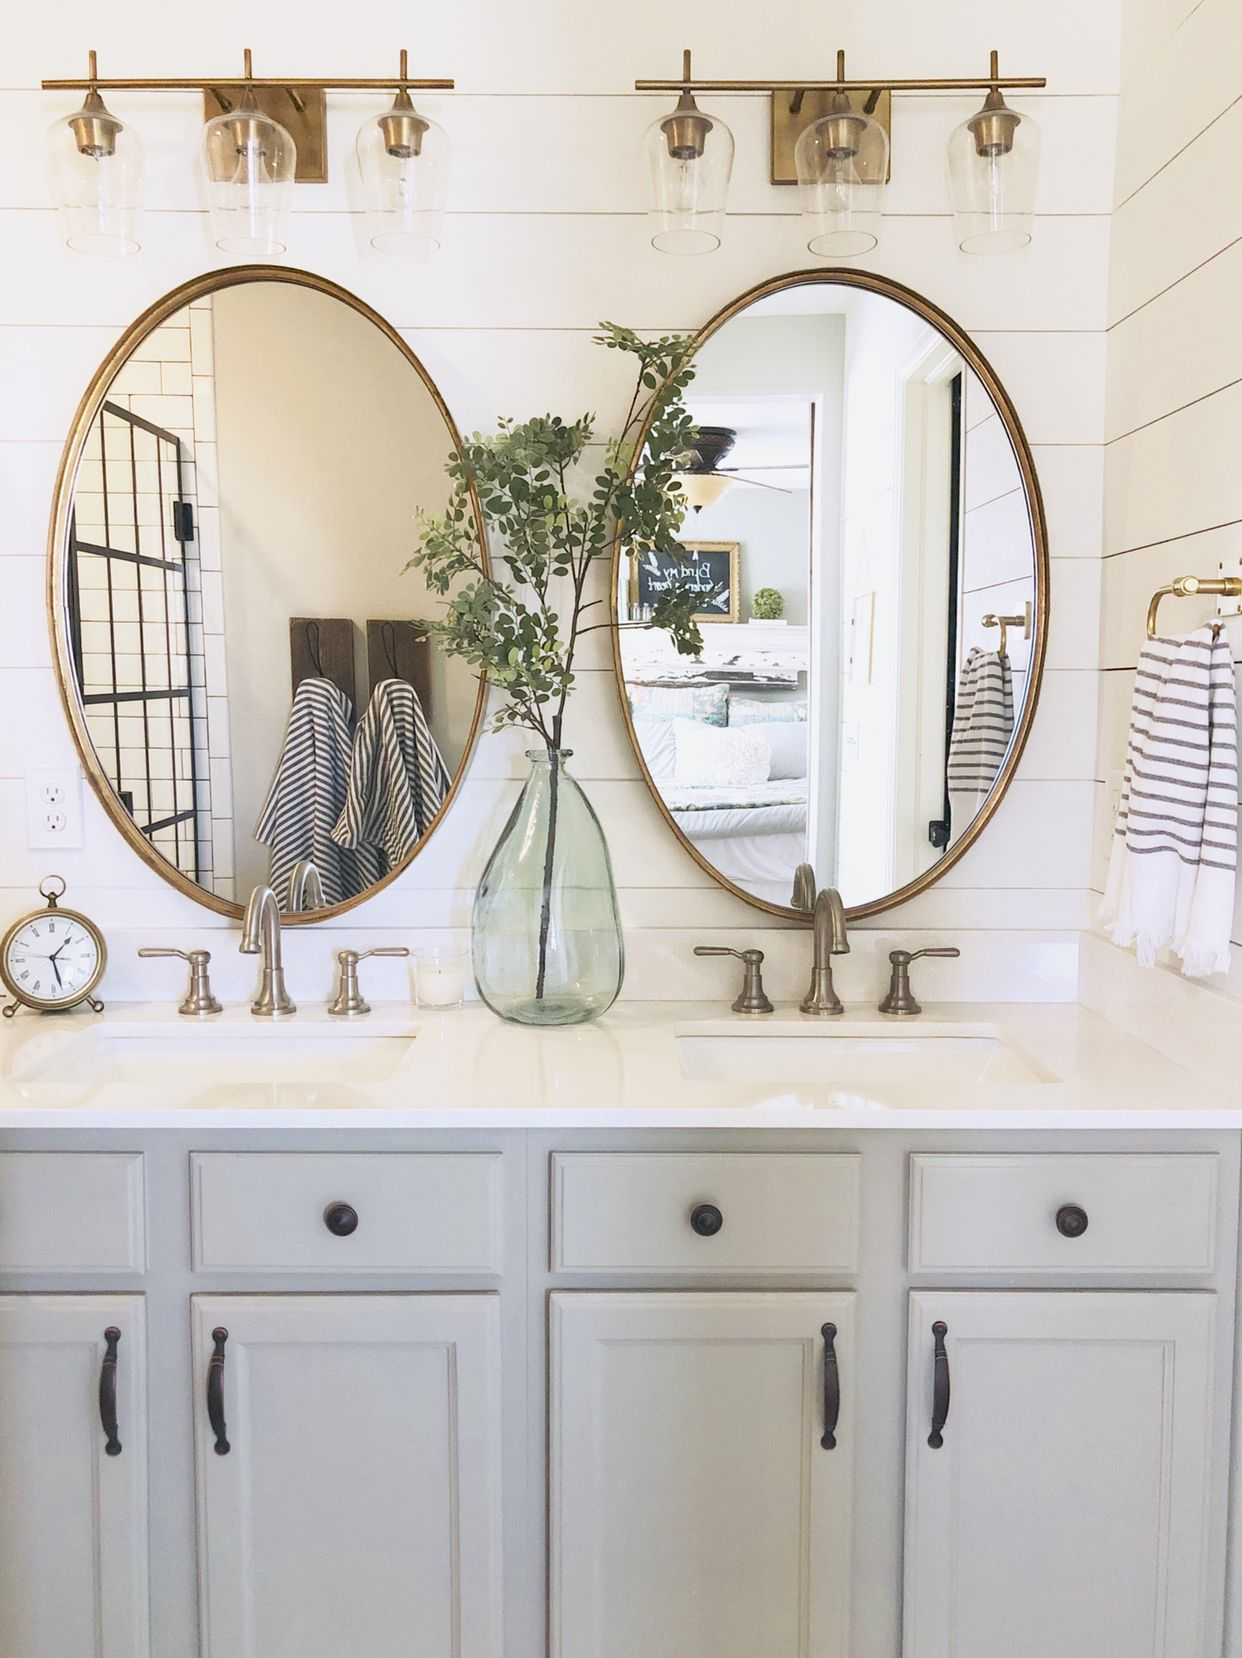 Farmhouse Industrial Bathroom Round Mirror Bathroom Oval Mirror Bathroom Bathroom Mirror